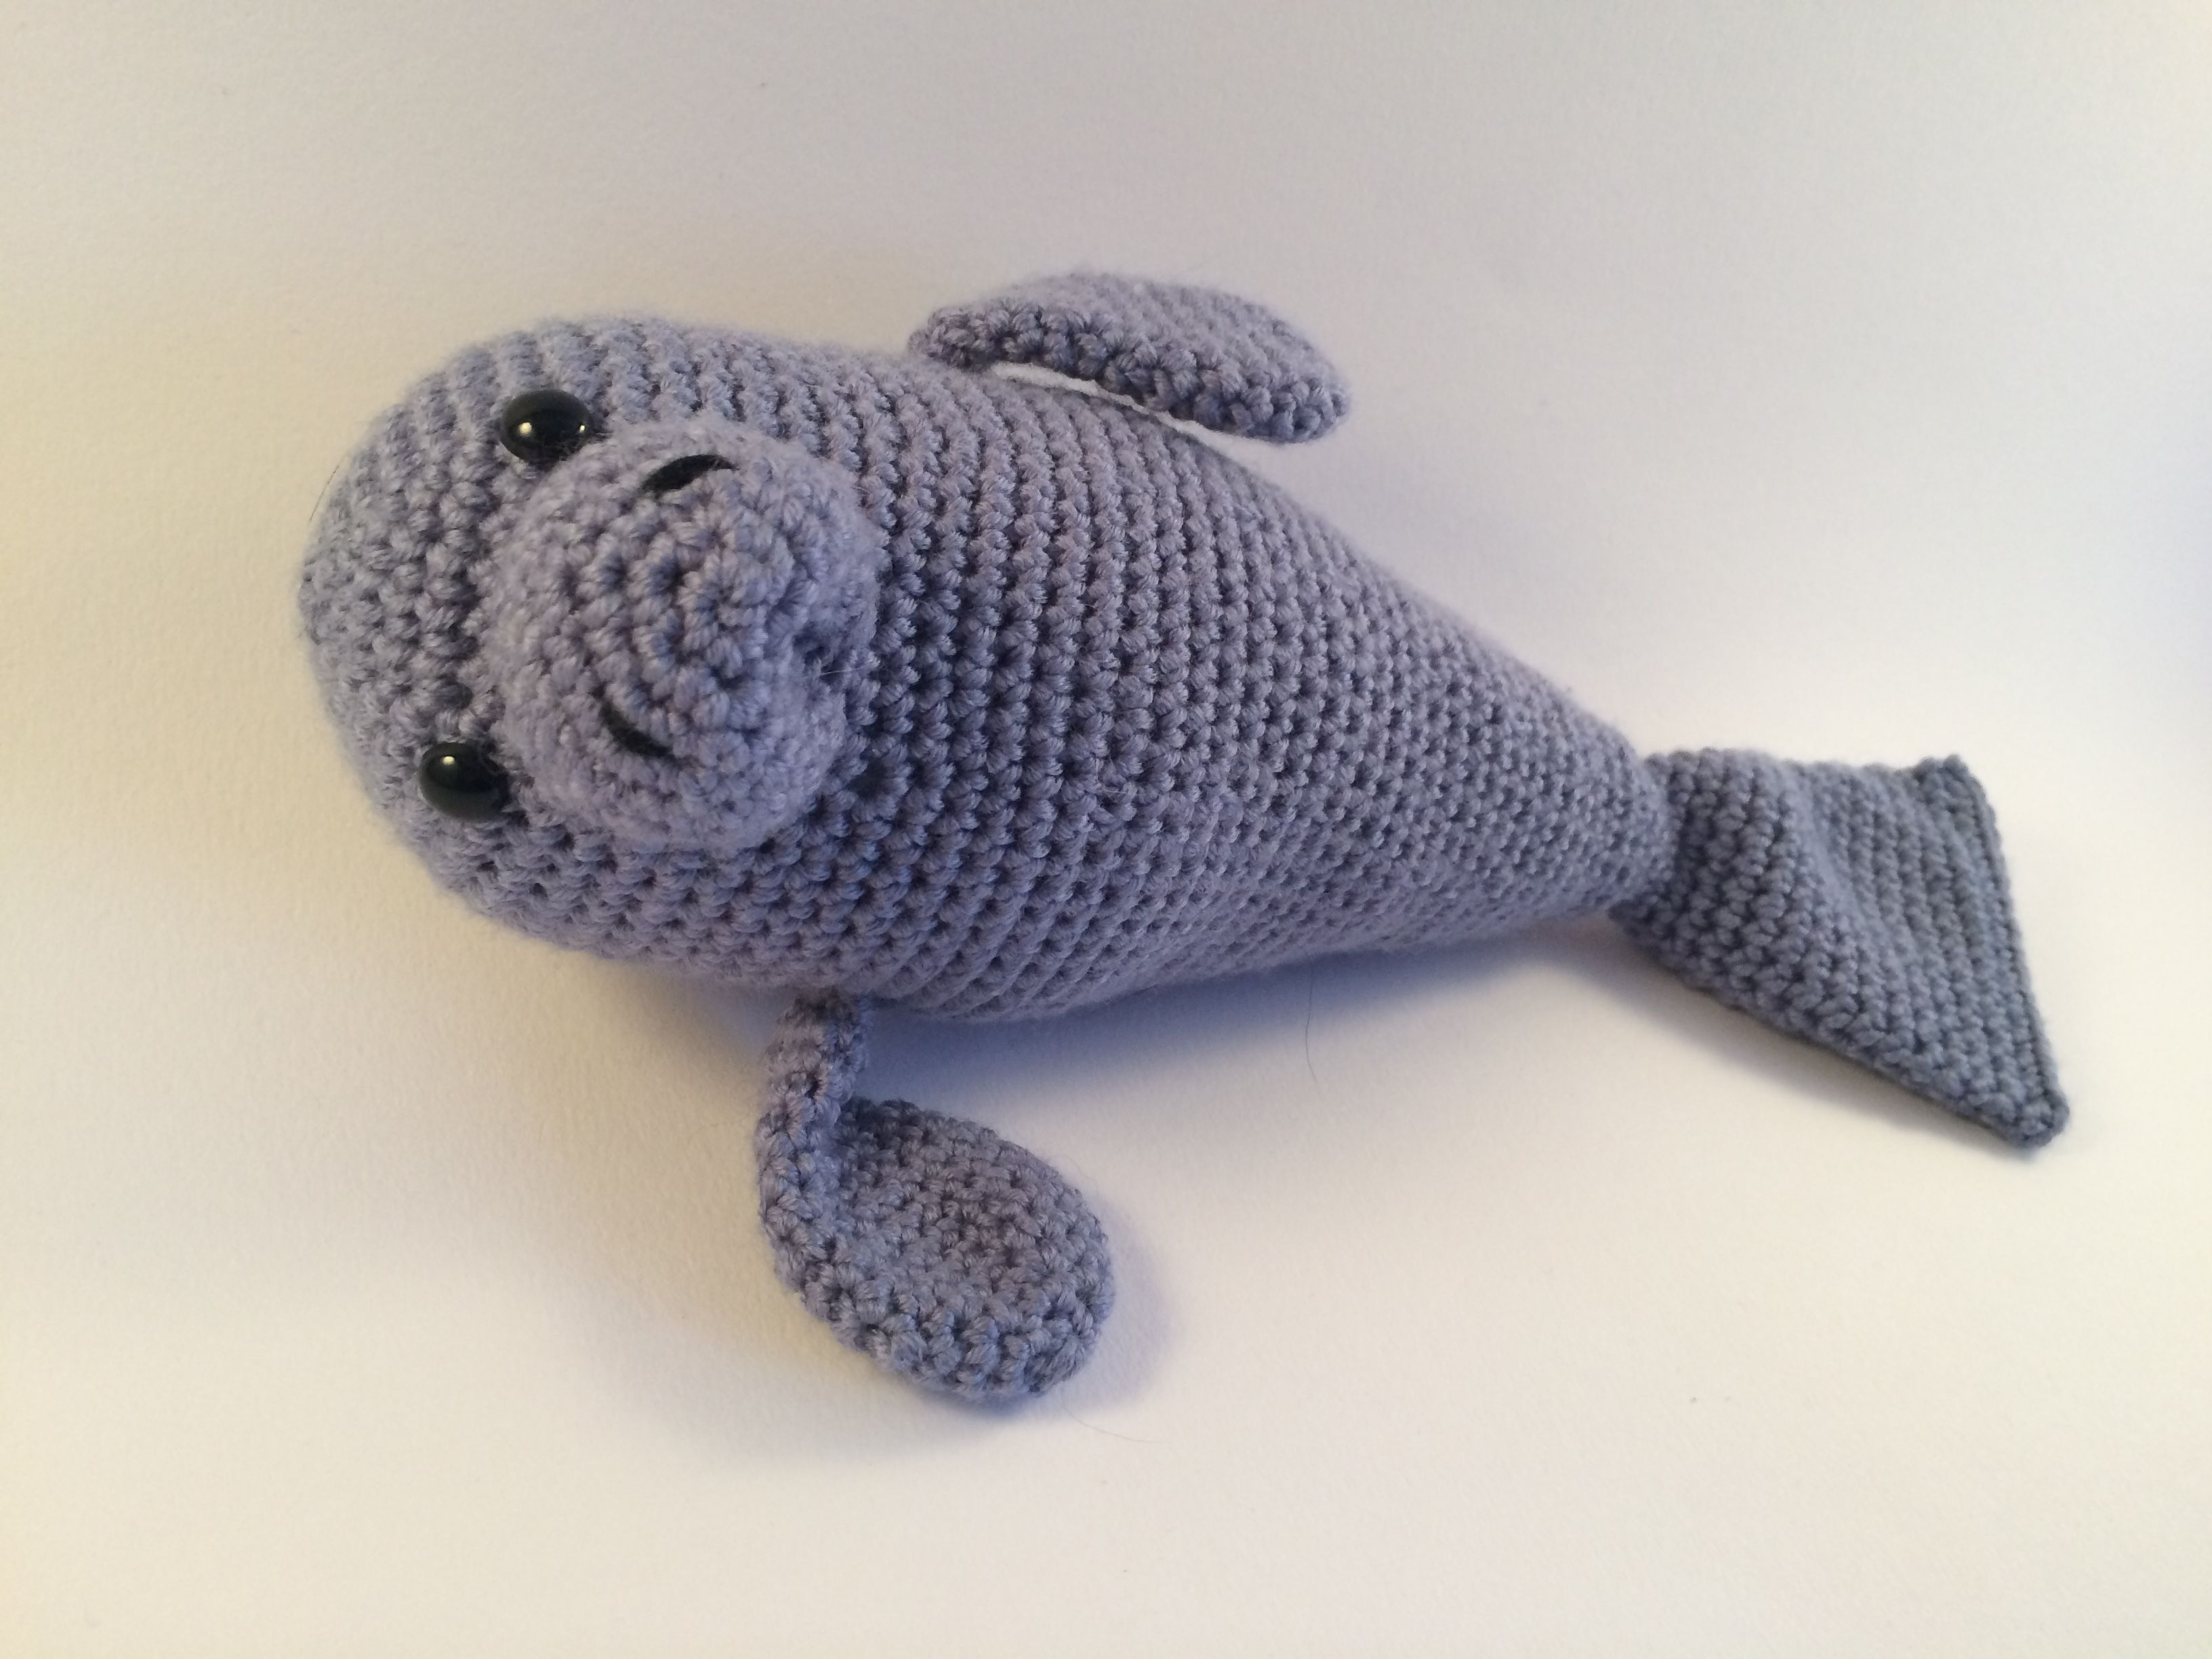 Crocheted Manatee by Chameleon Crafters | Knotsense | Pinterest ...